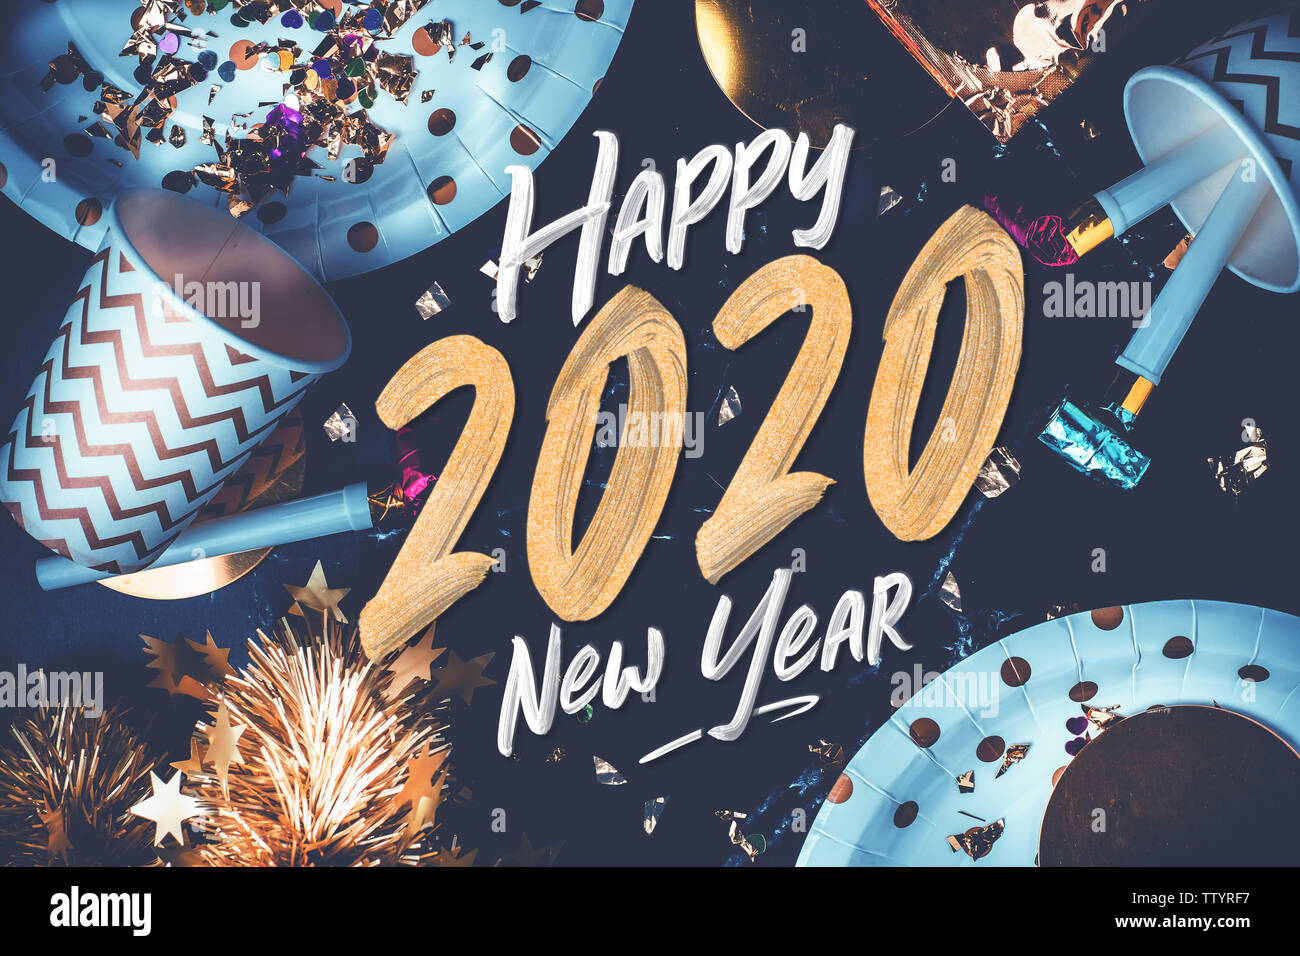 Funny Happy New Year 2020.2020 Happy New Year Hand Brush Storke Font On Marble Table